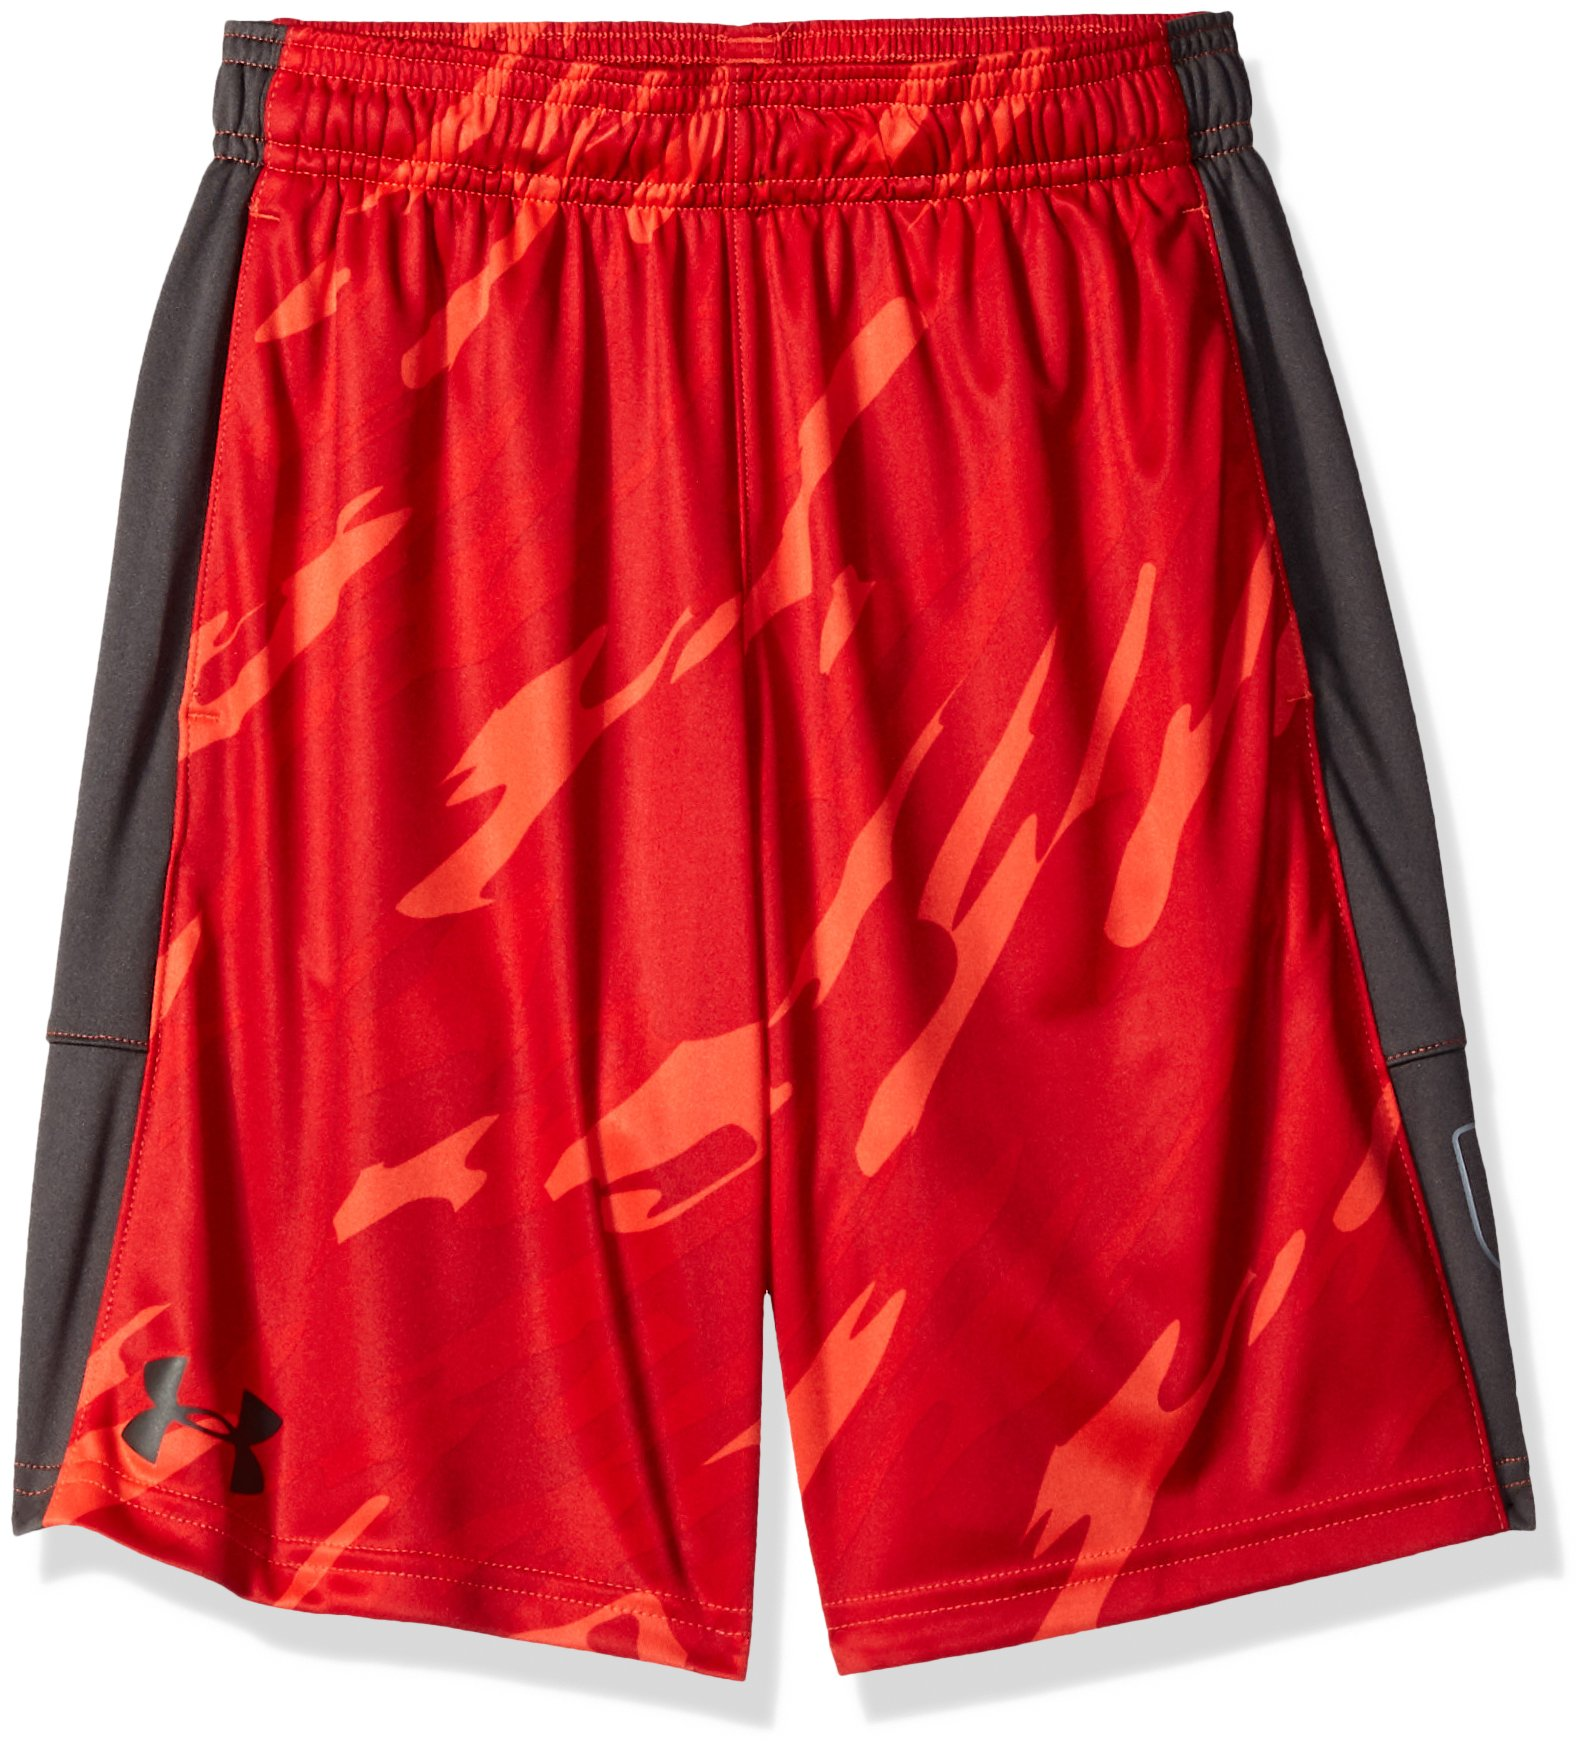 Under Armour Boys' Instinct Printed Shorts,  Radio Red (890)/Charcoal  Youth Medium by Under Armour